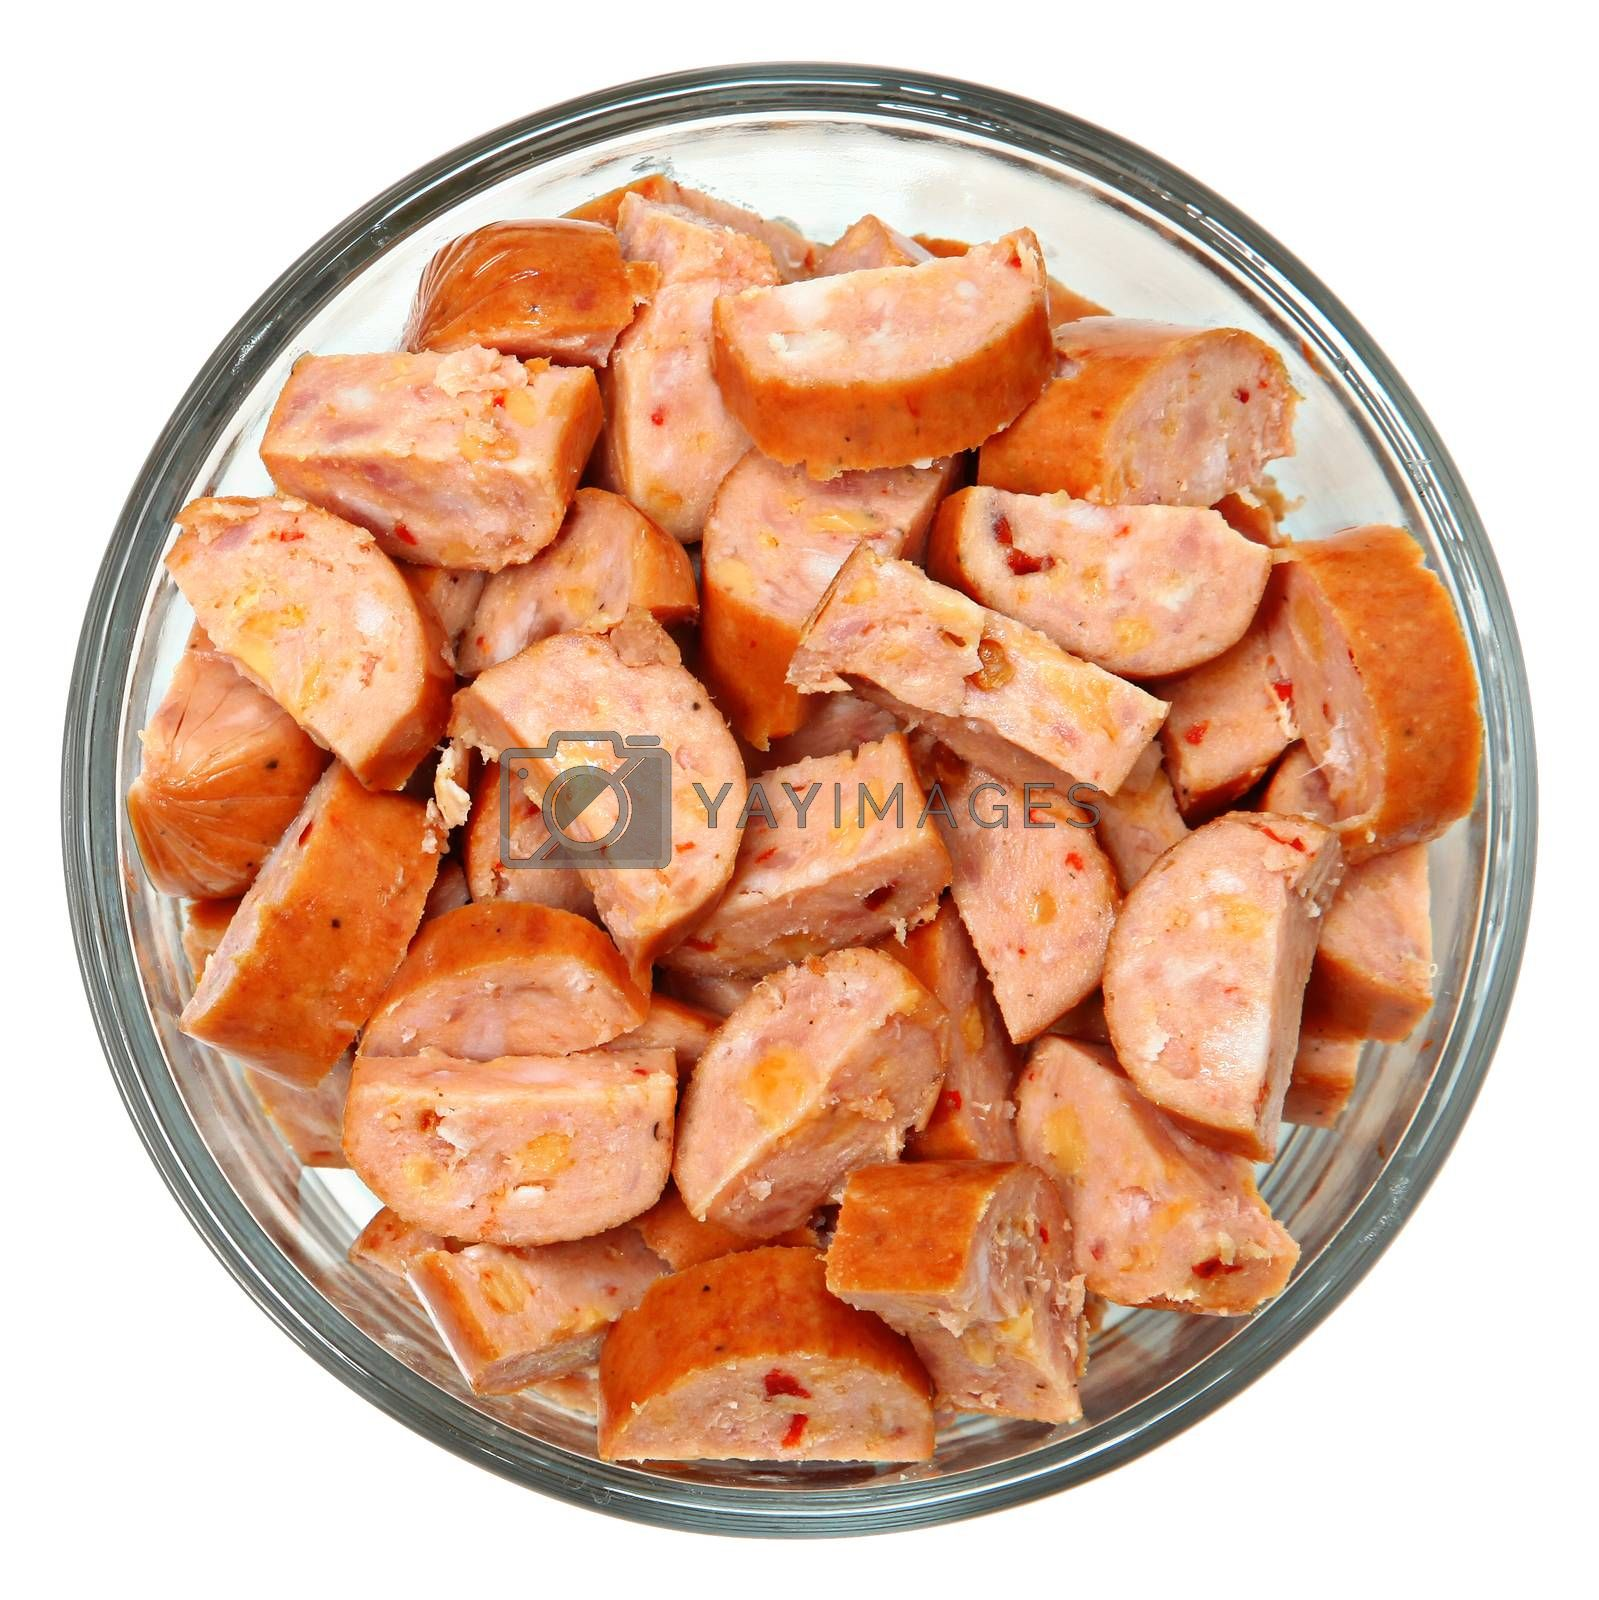 Royalty free image of Spicy Cheese Filled Chipotle Sausages Chopped in Bowl by duplass